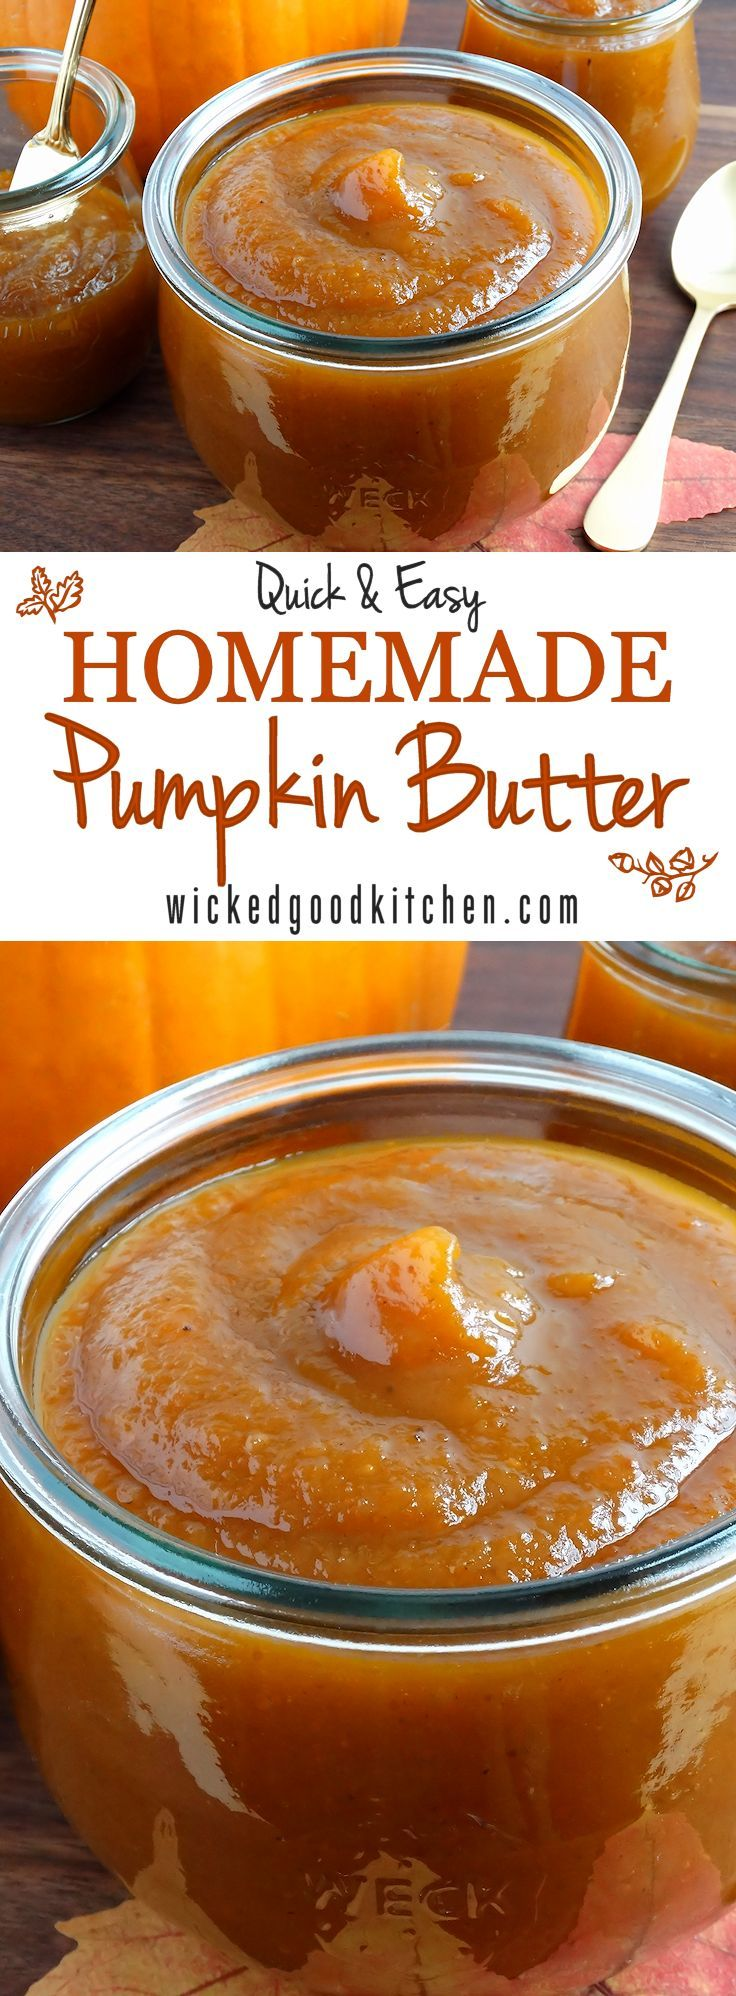 Homemade Pumpkin Butter (quick & easy)